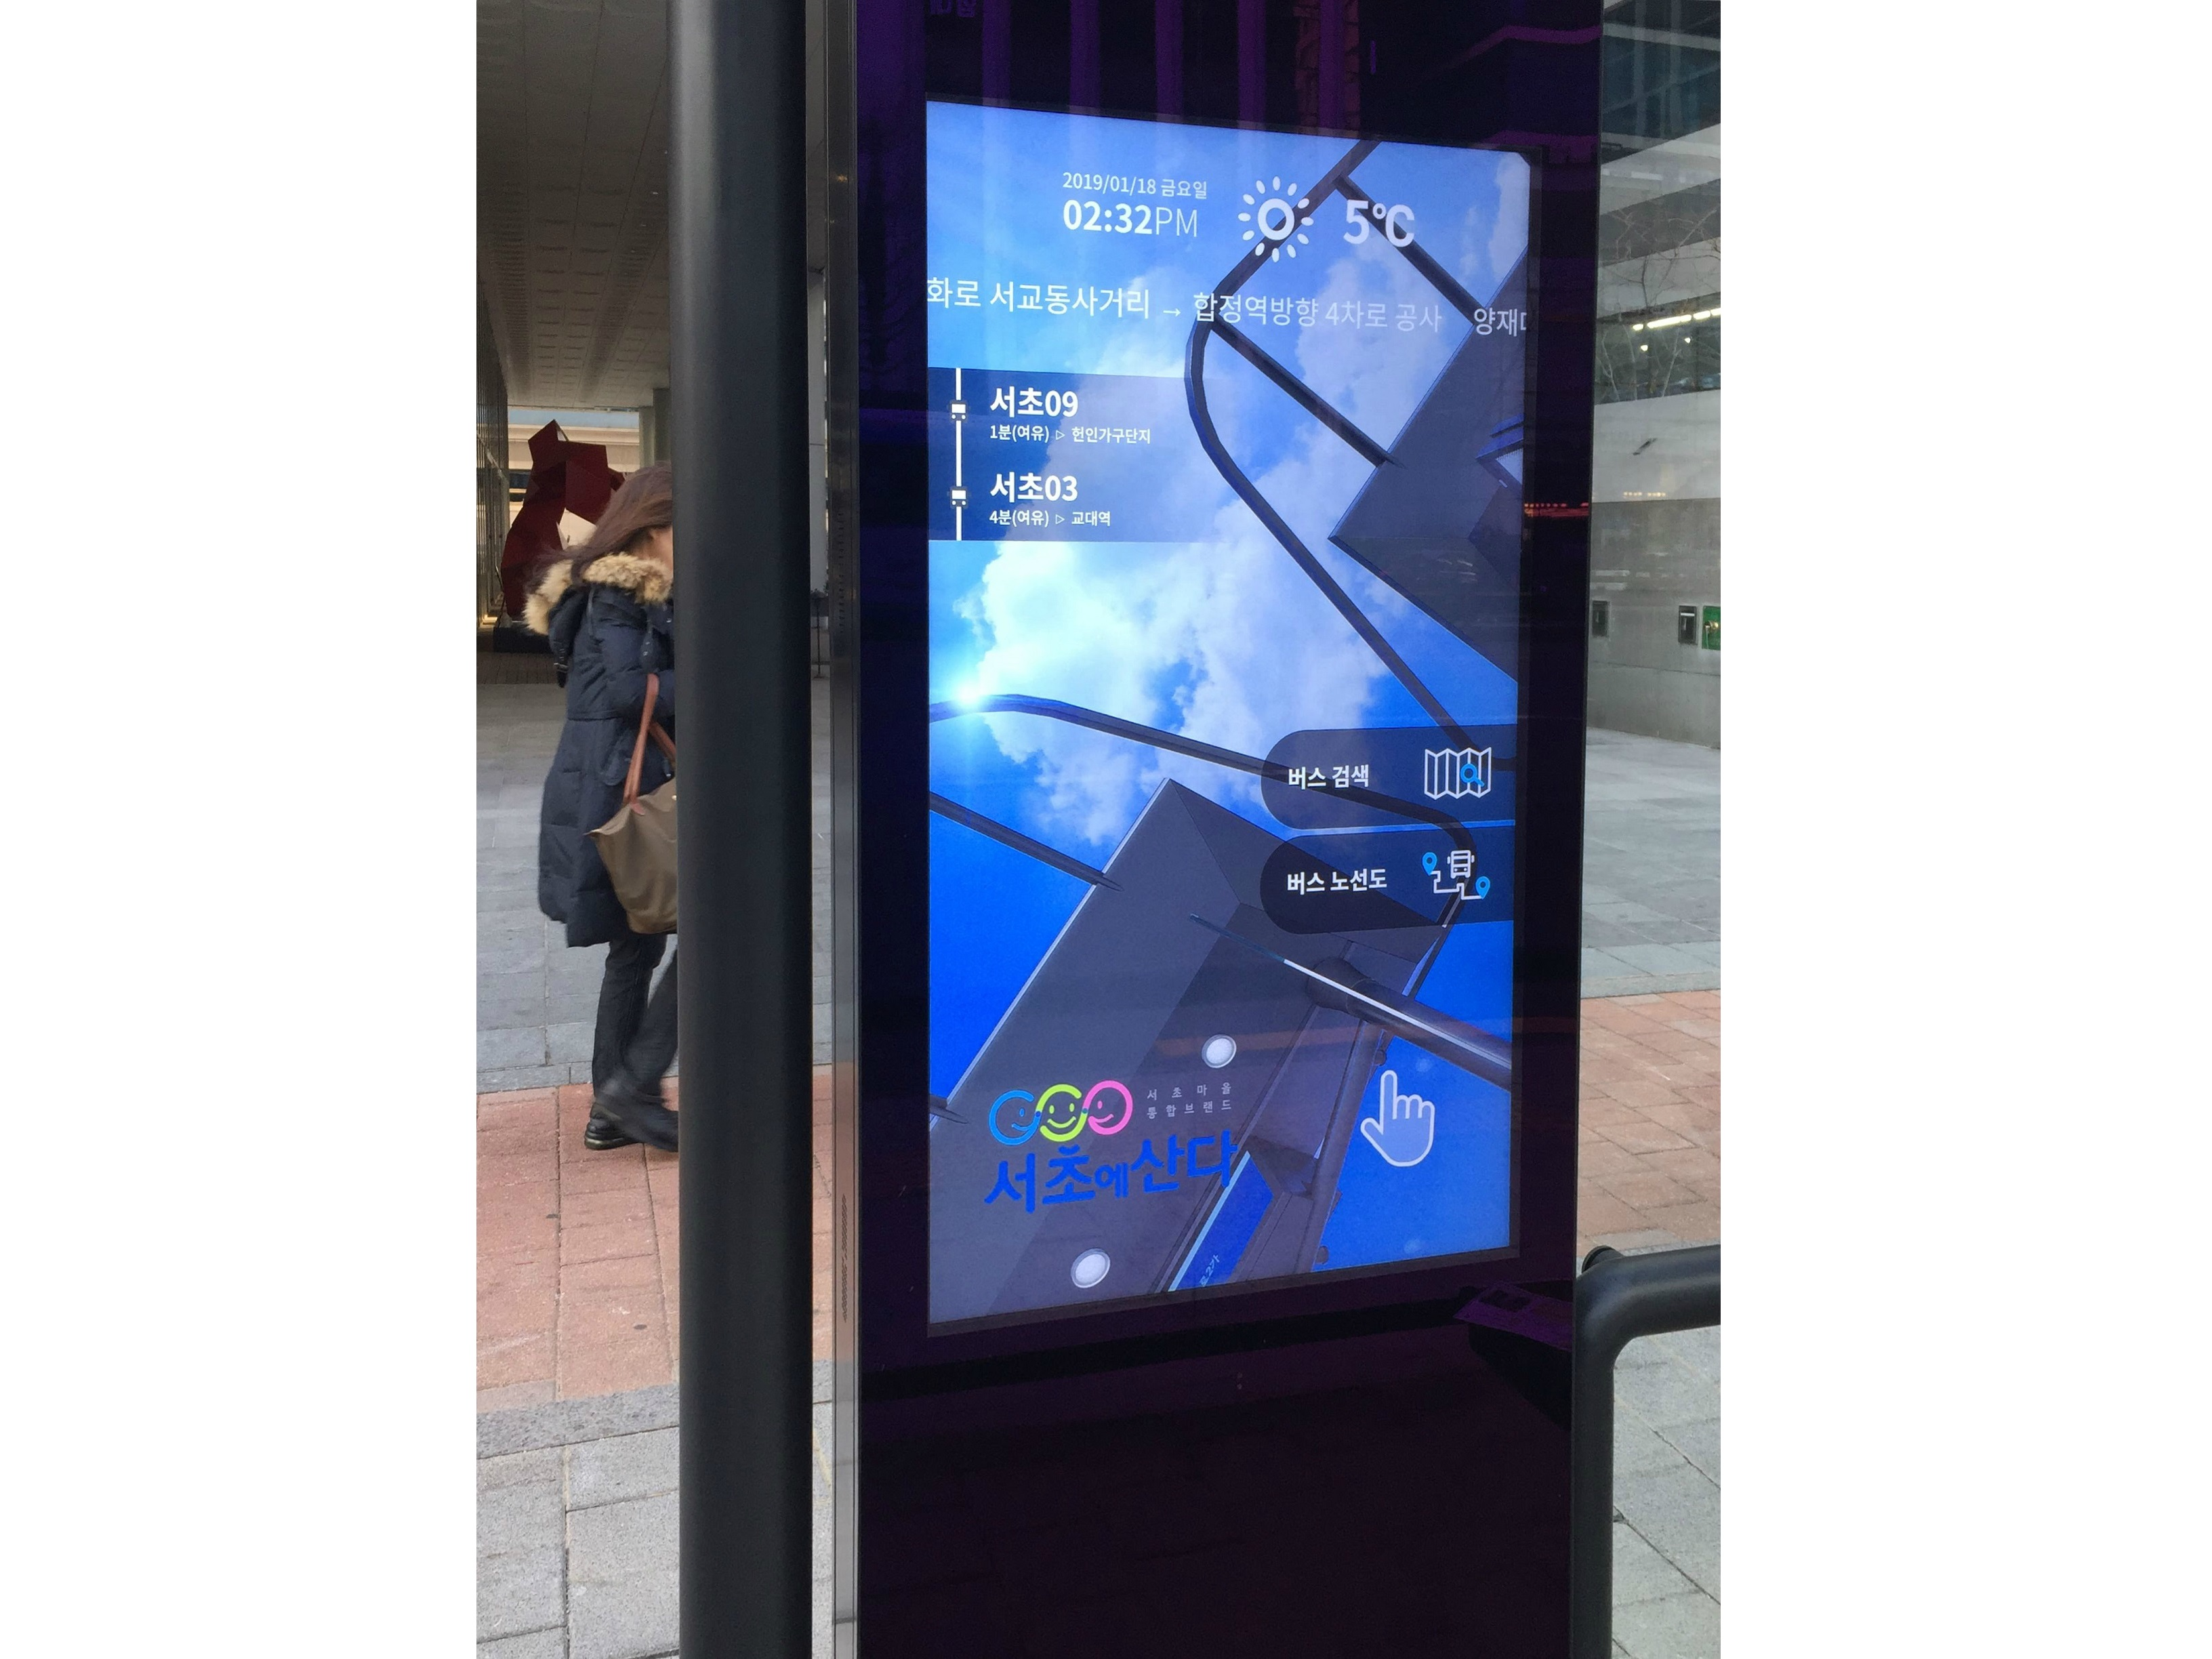 Seoul City Bus Stop Traffic Info System